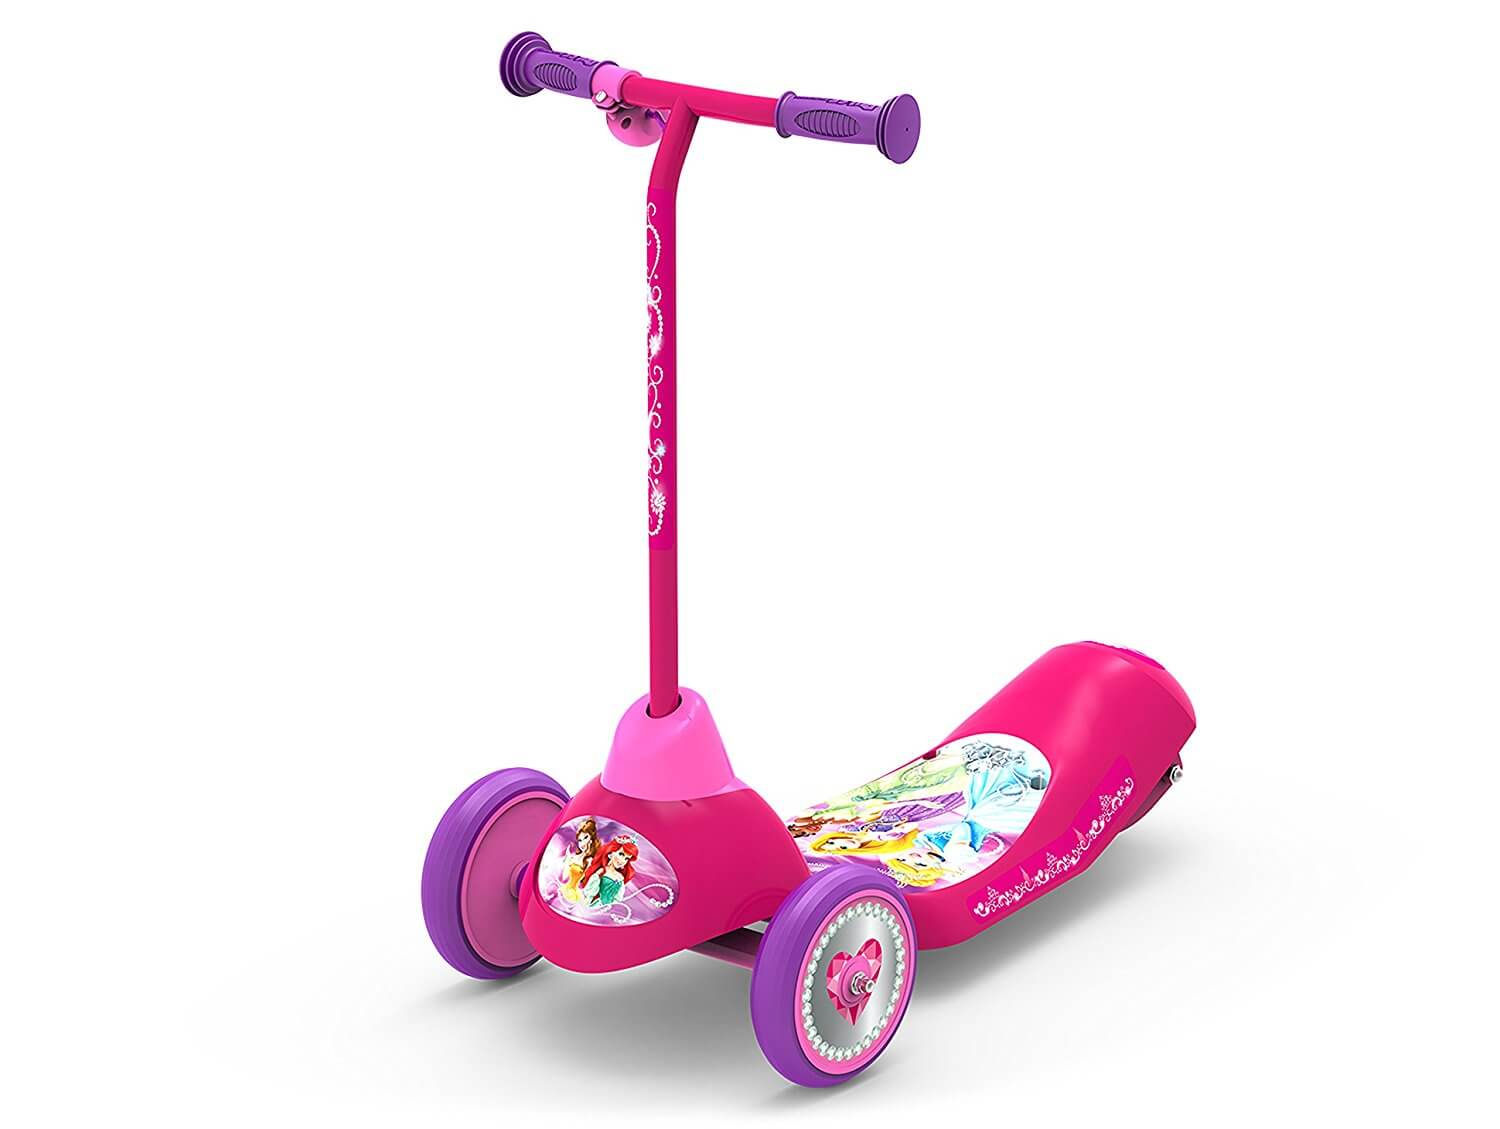 Disney Princess Electric Scooter Electric Kids Scooters